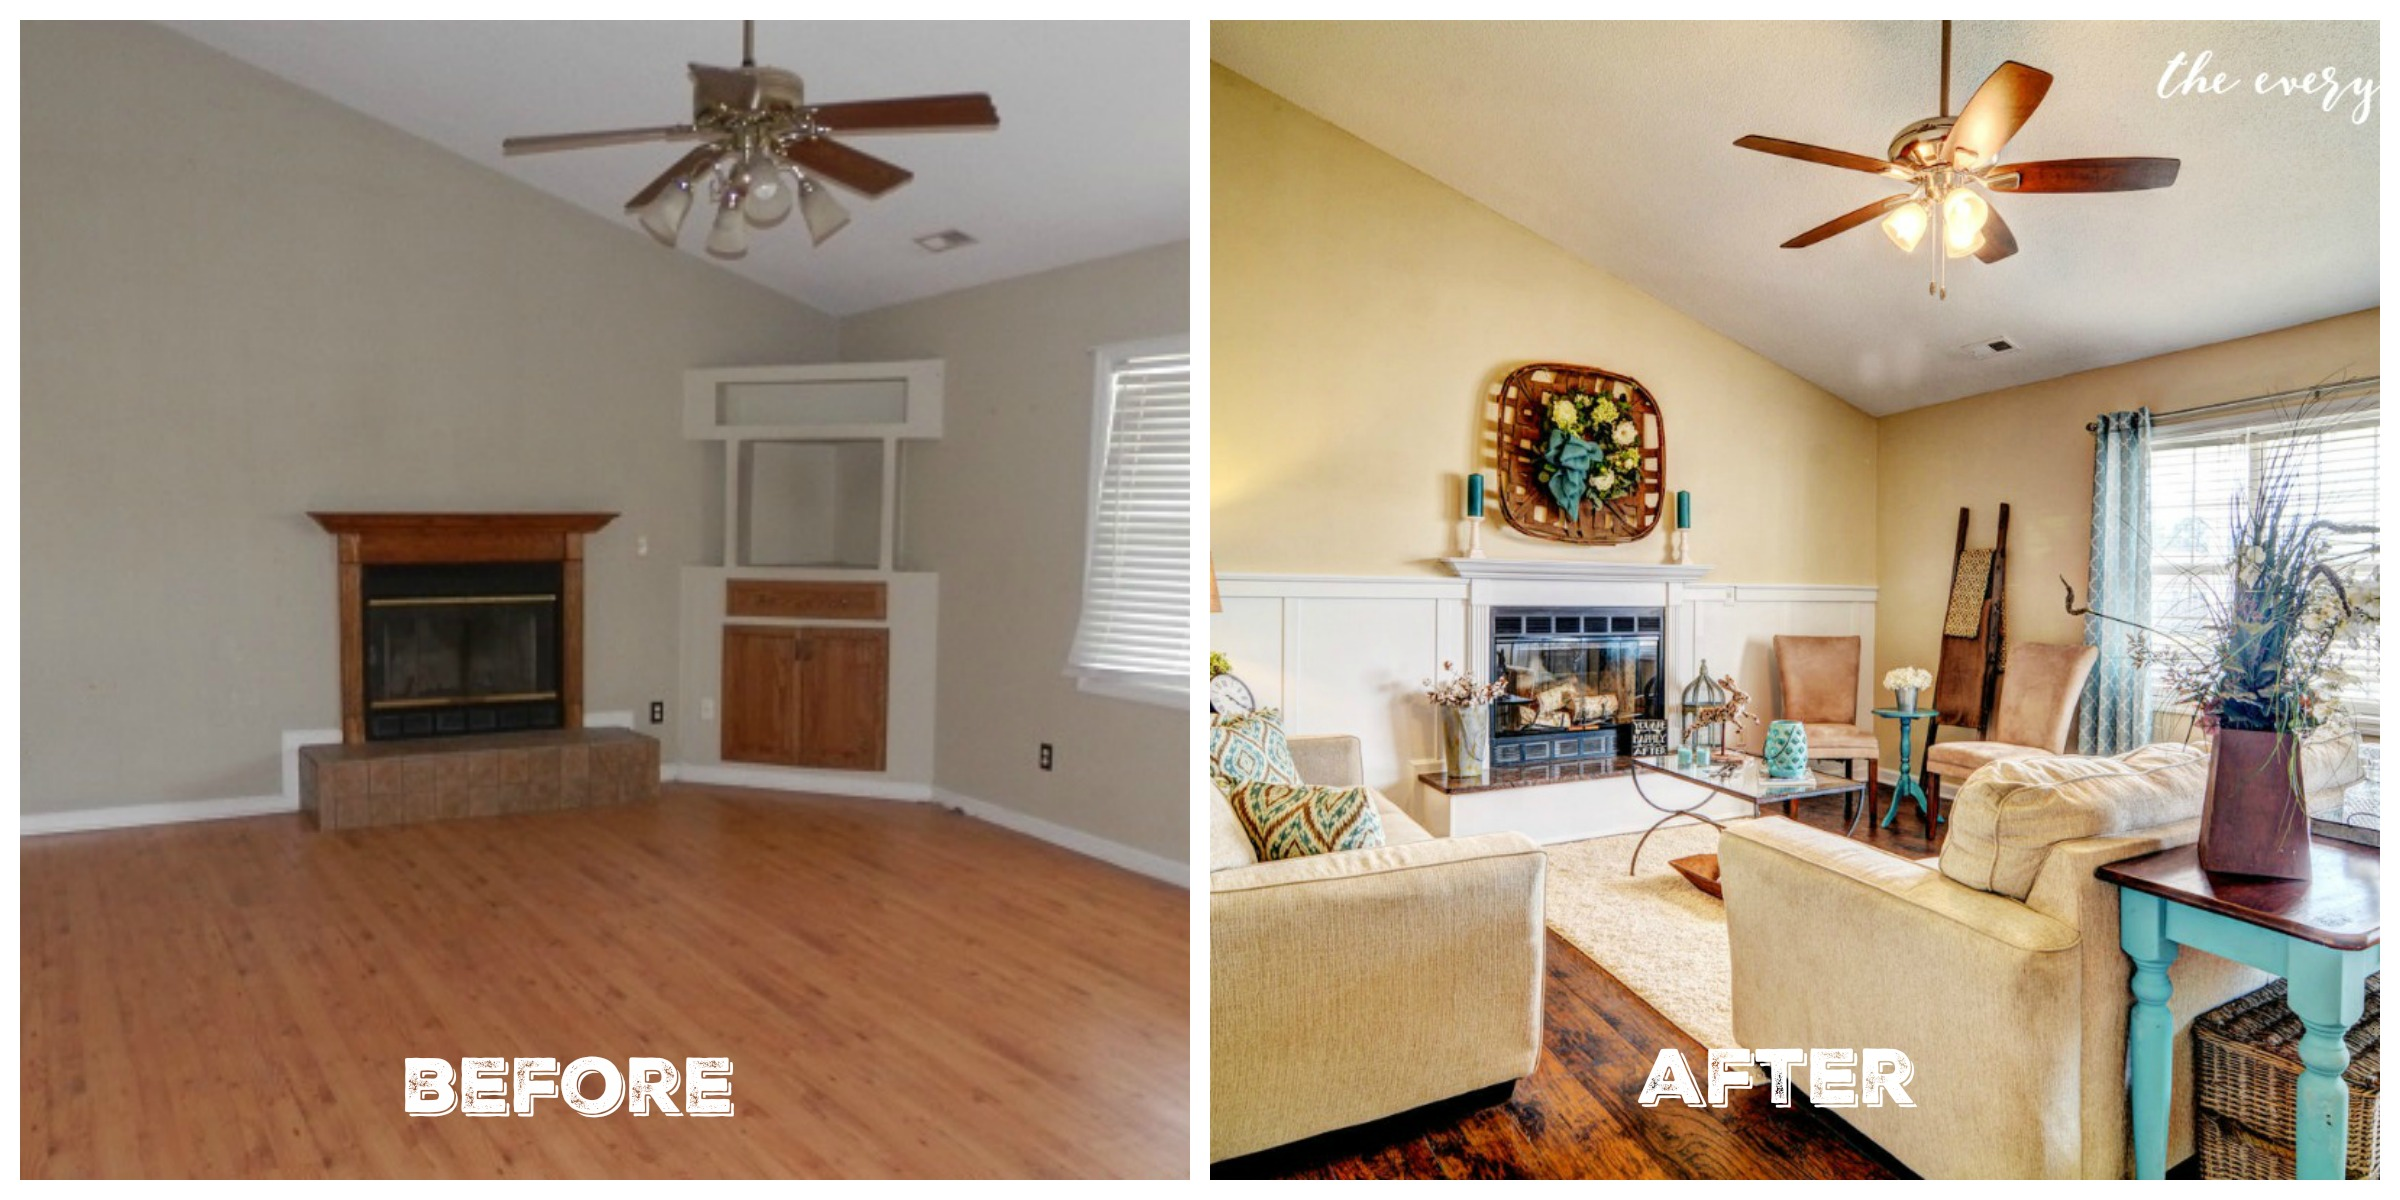 Before & After Living Room Flip House Reveal The Everyday Home